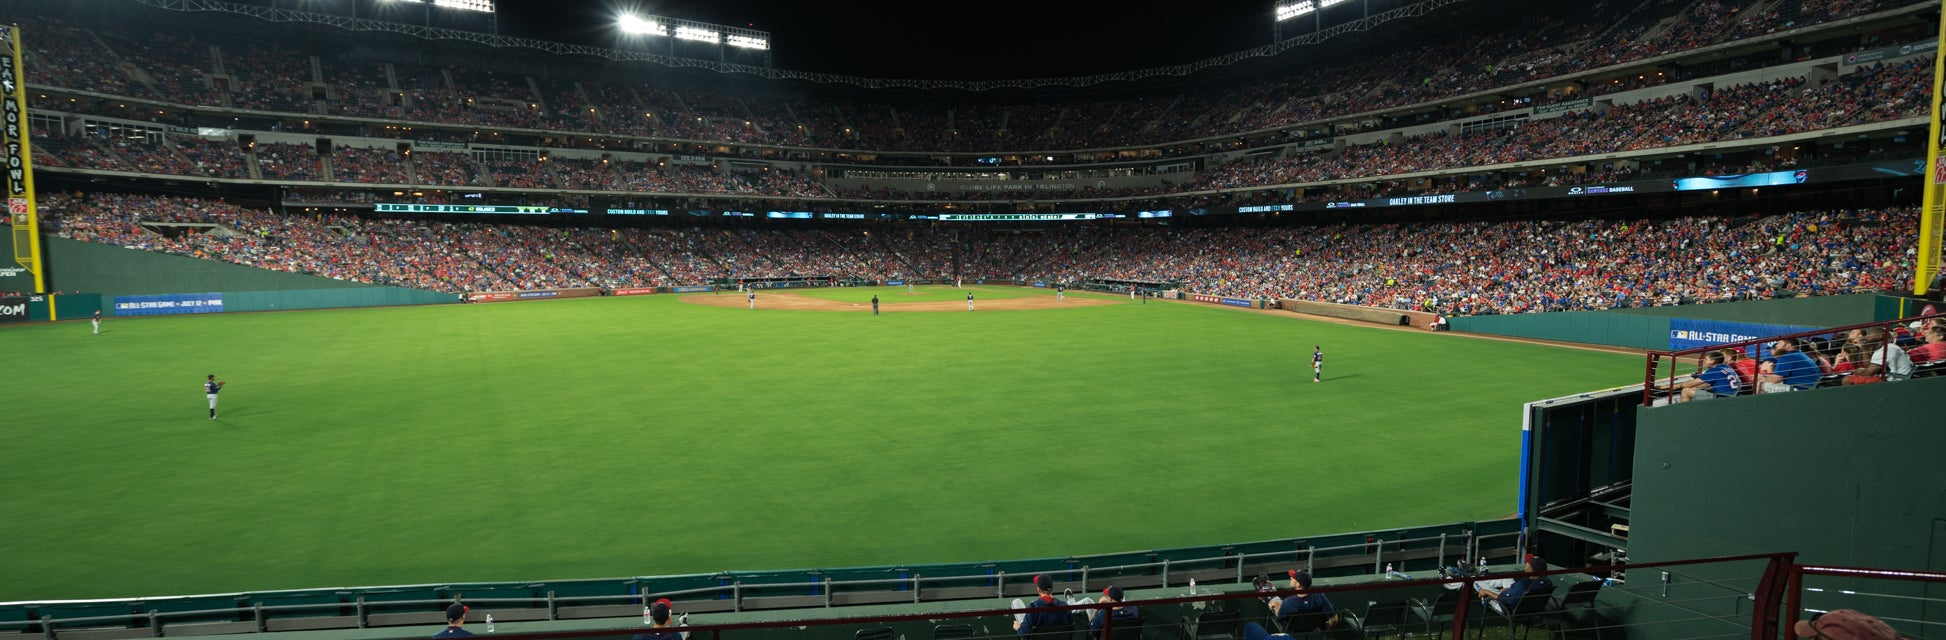 Seat view from Outfield Plaza